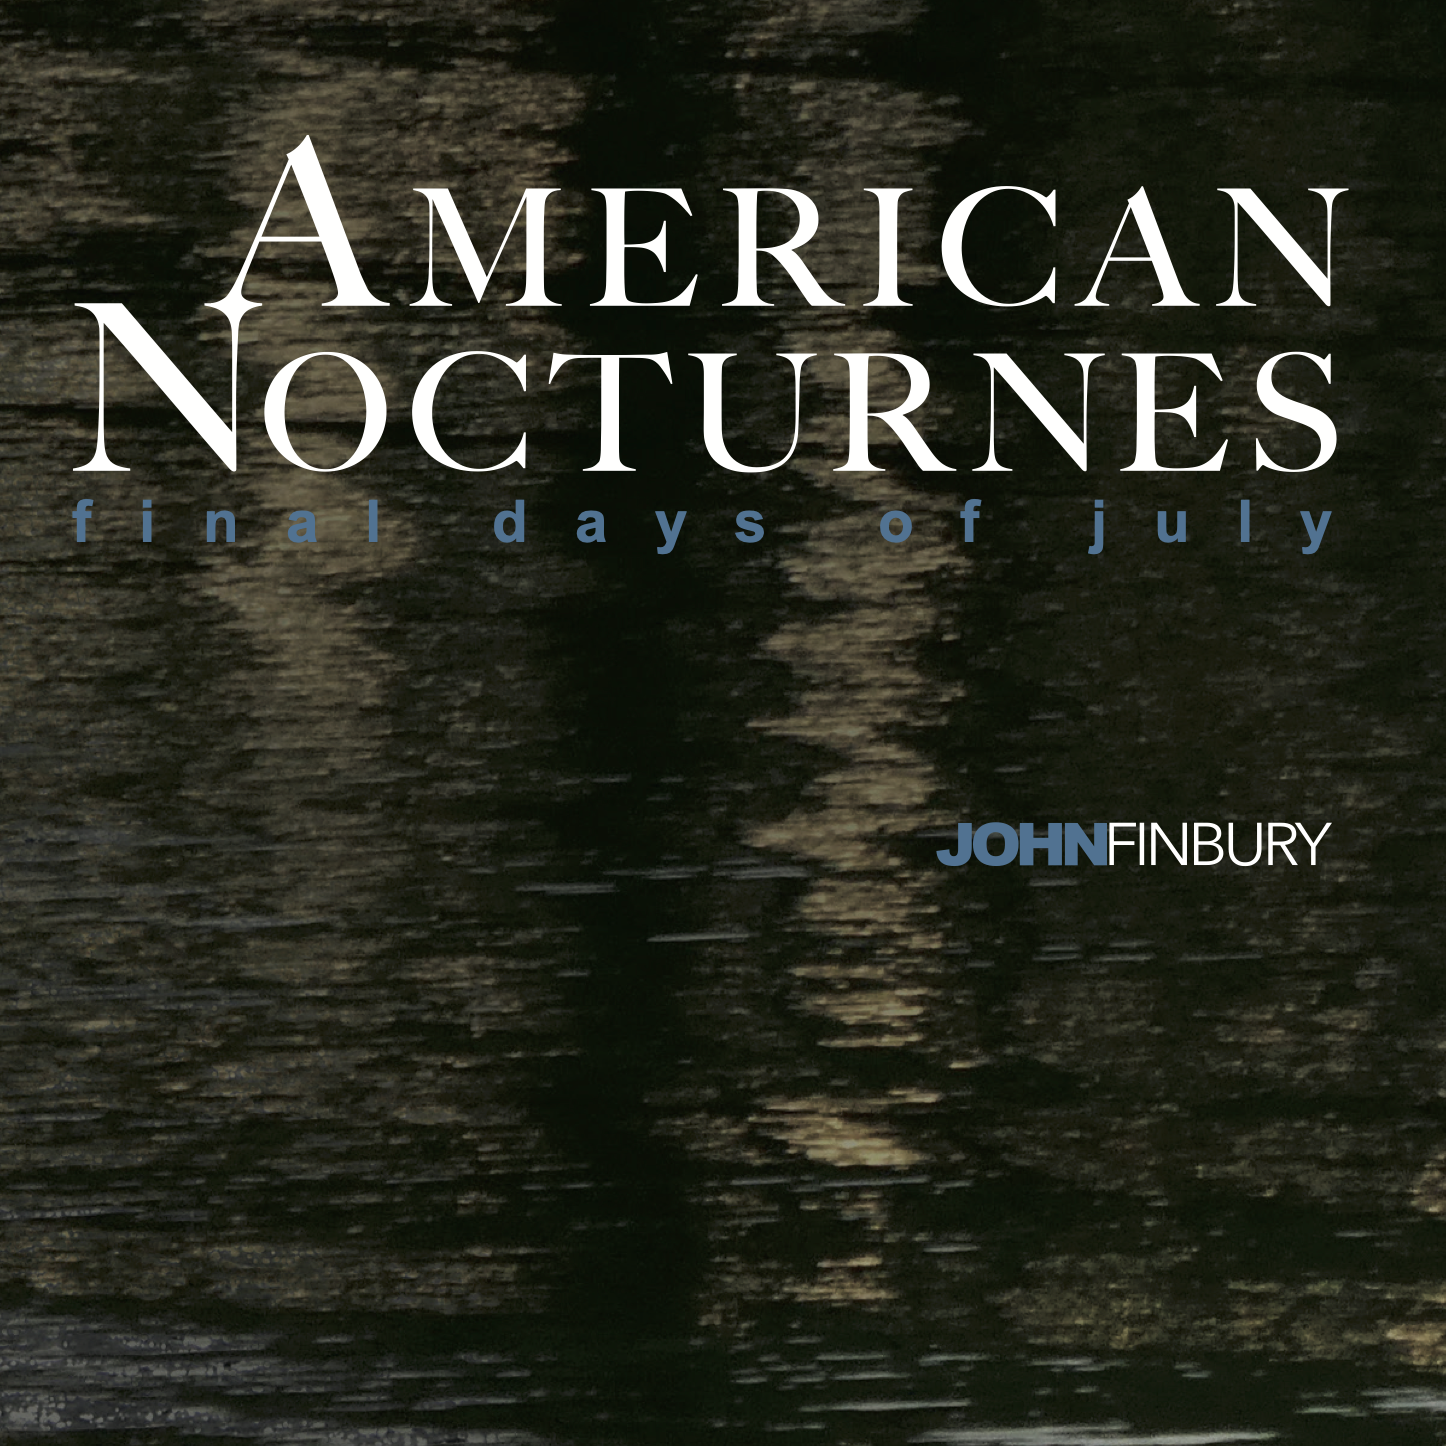 Take Effect Review of American Nocturnes